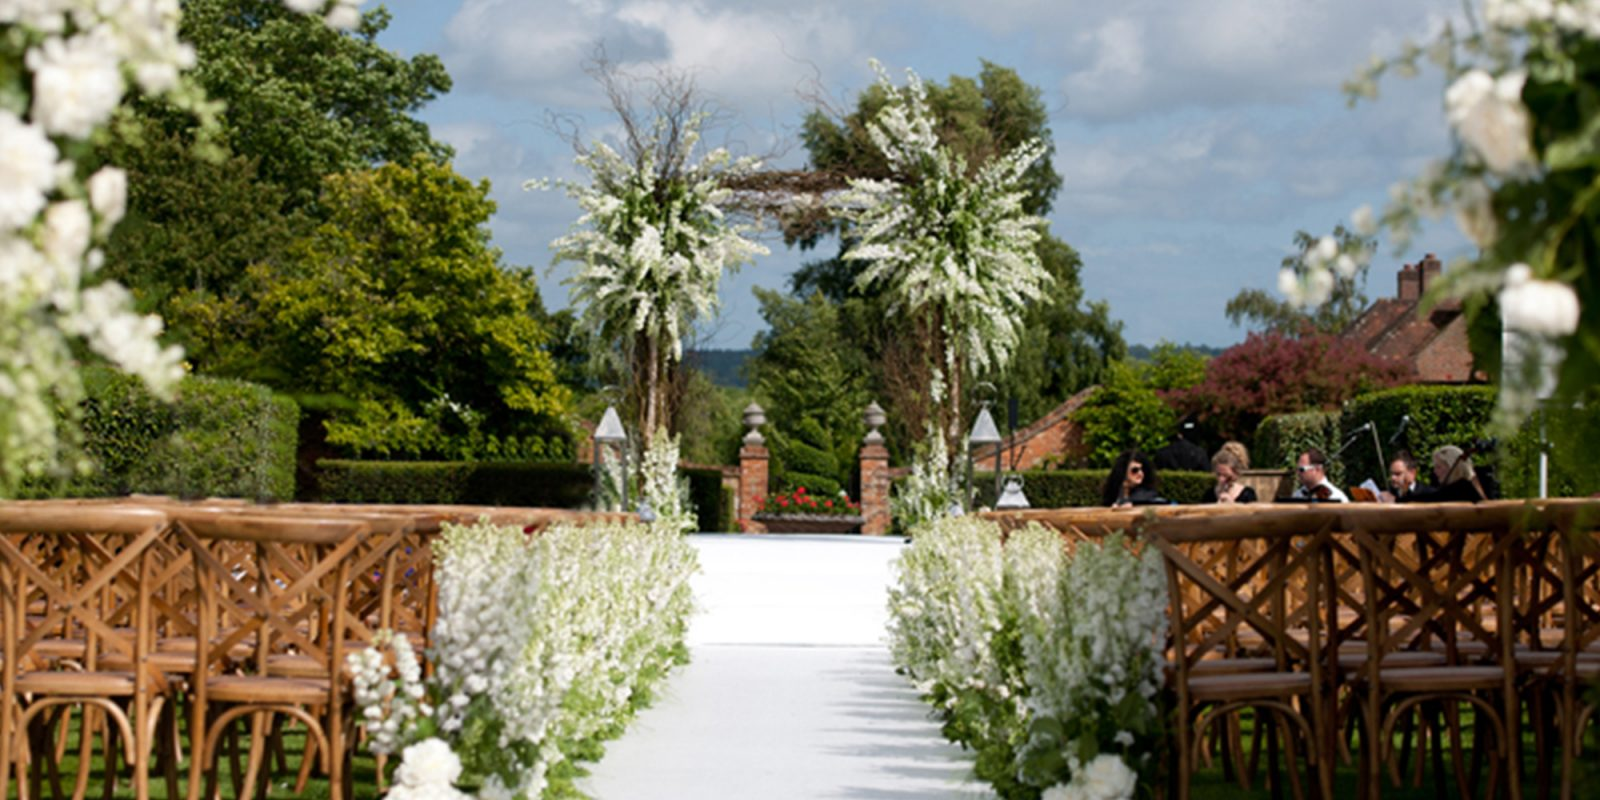 Countryside Wedding in Four Seasons Hotel Hampshire Gardens